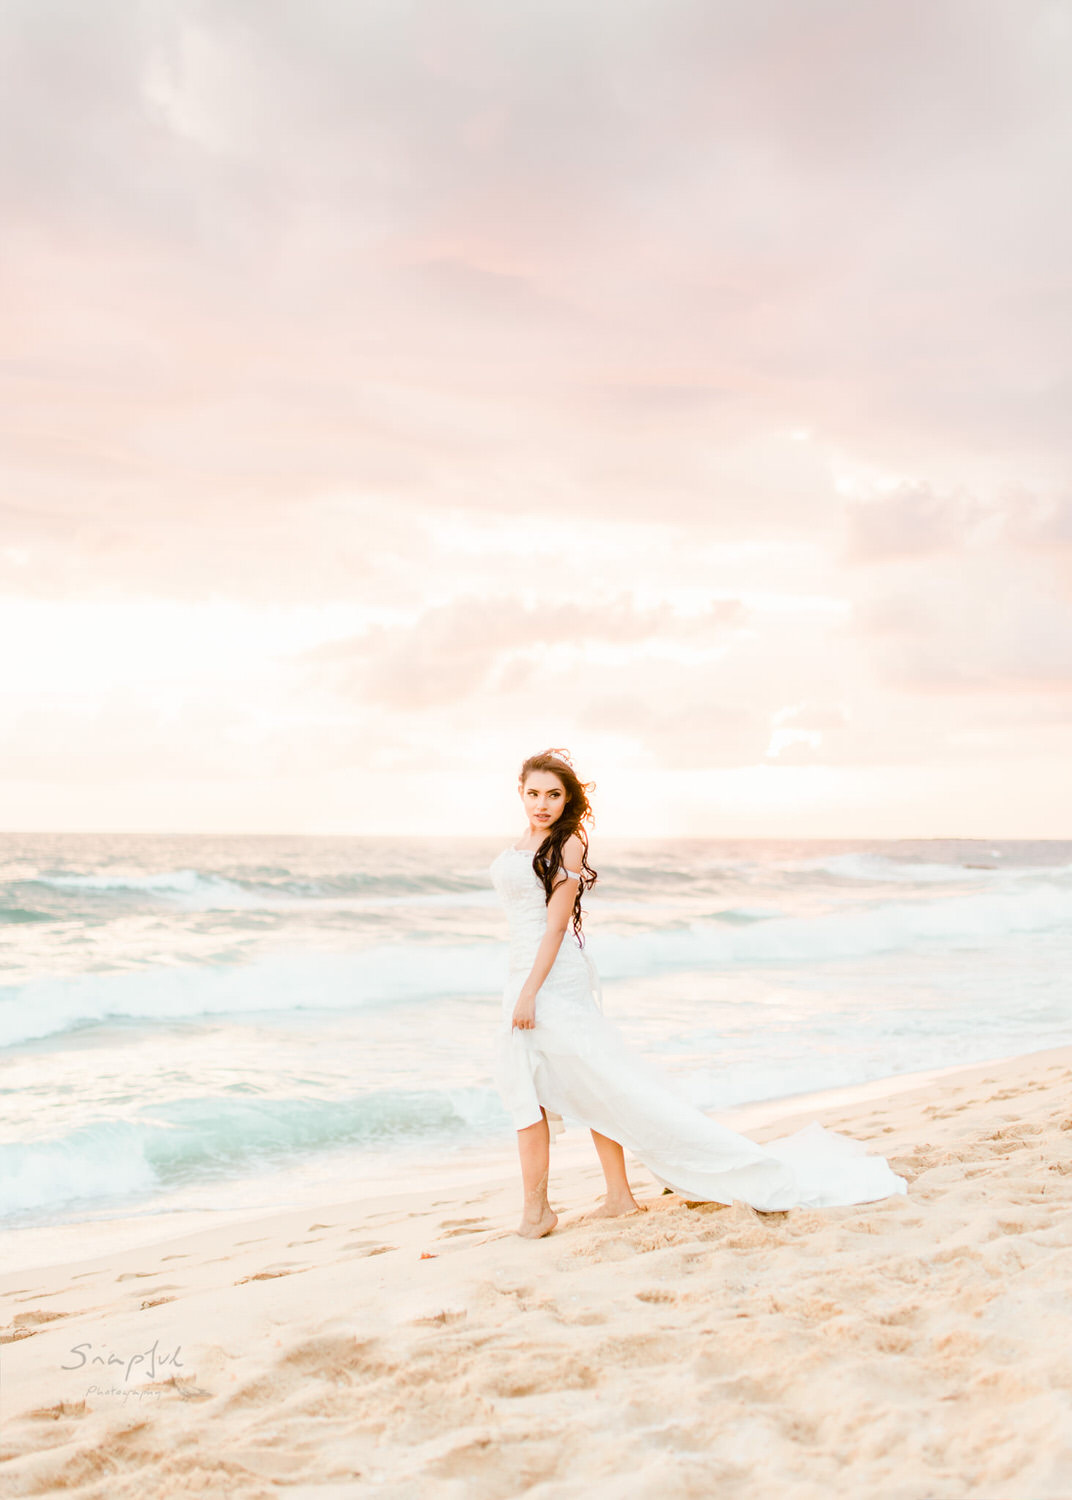 Epic portrait of bride posing at sunset on beach in Sri Lanka